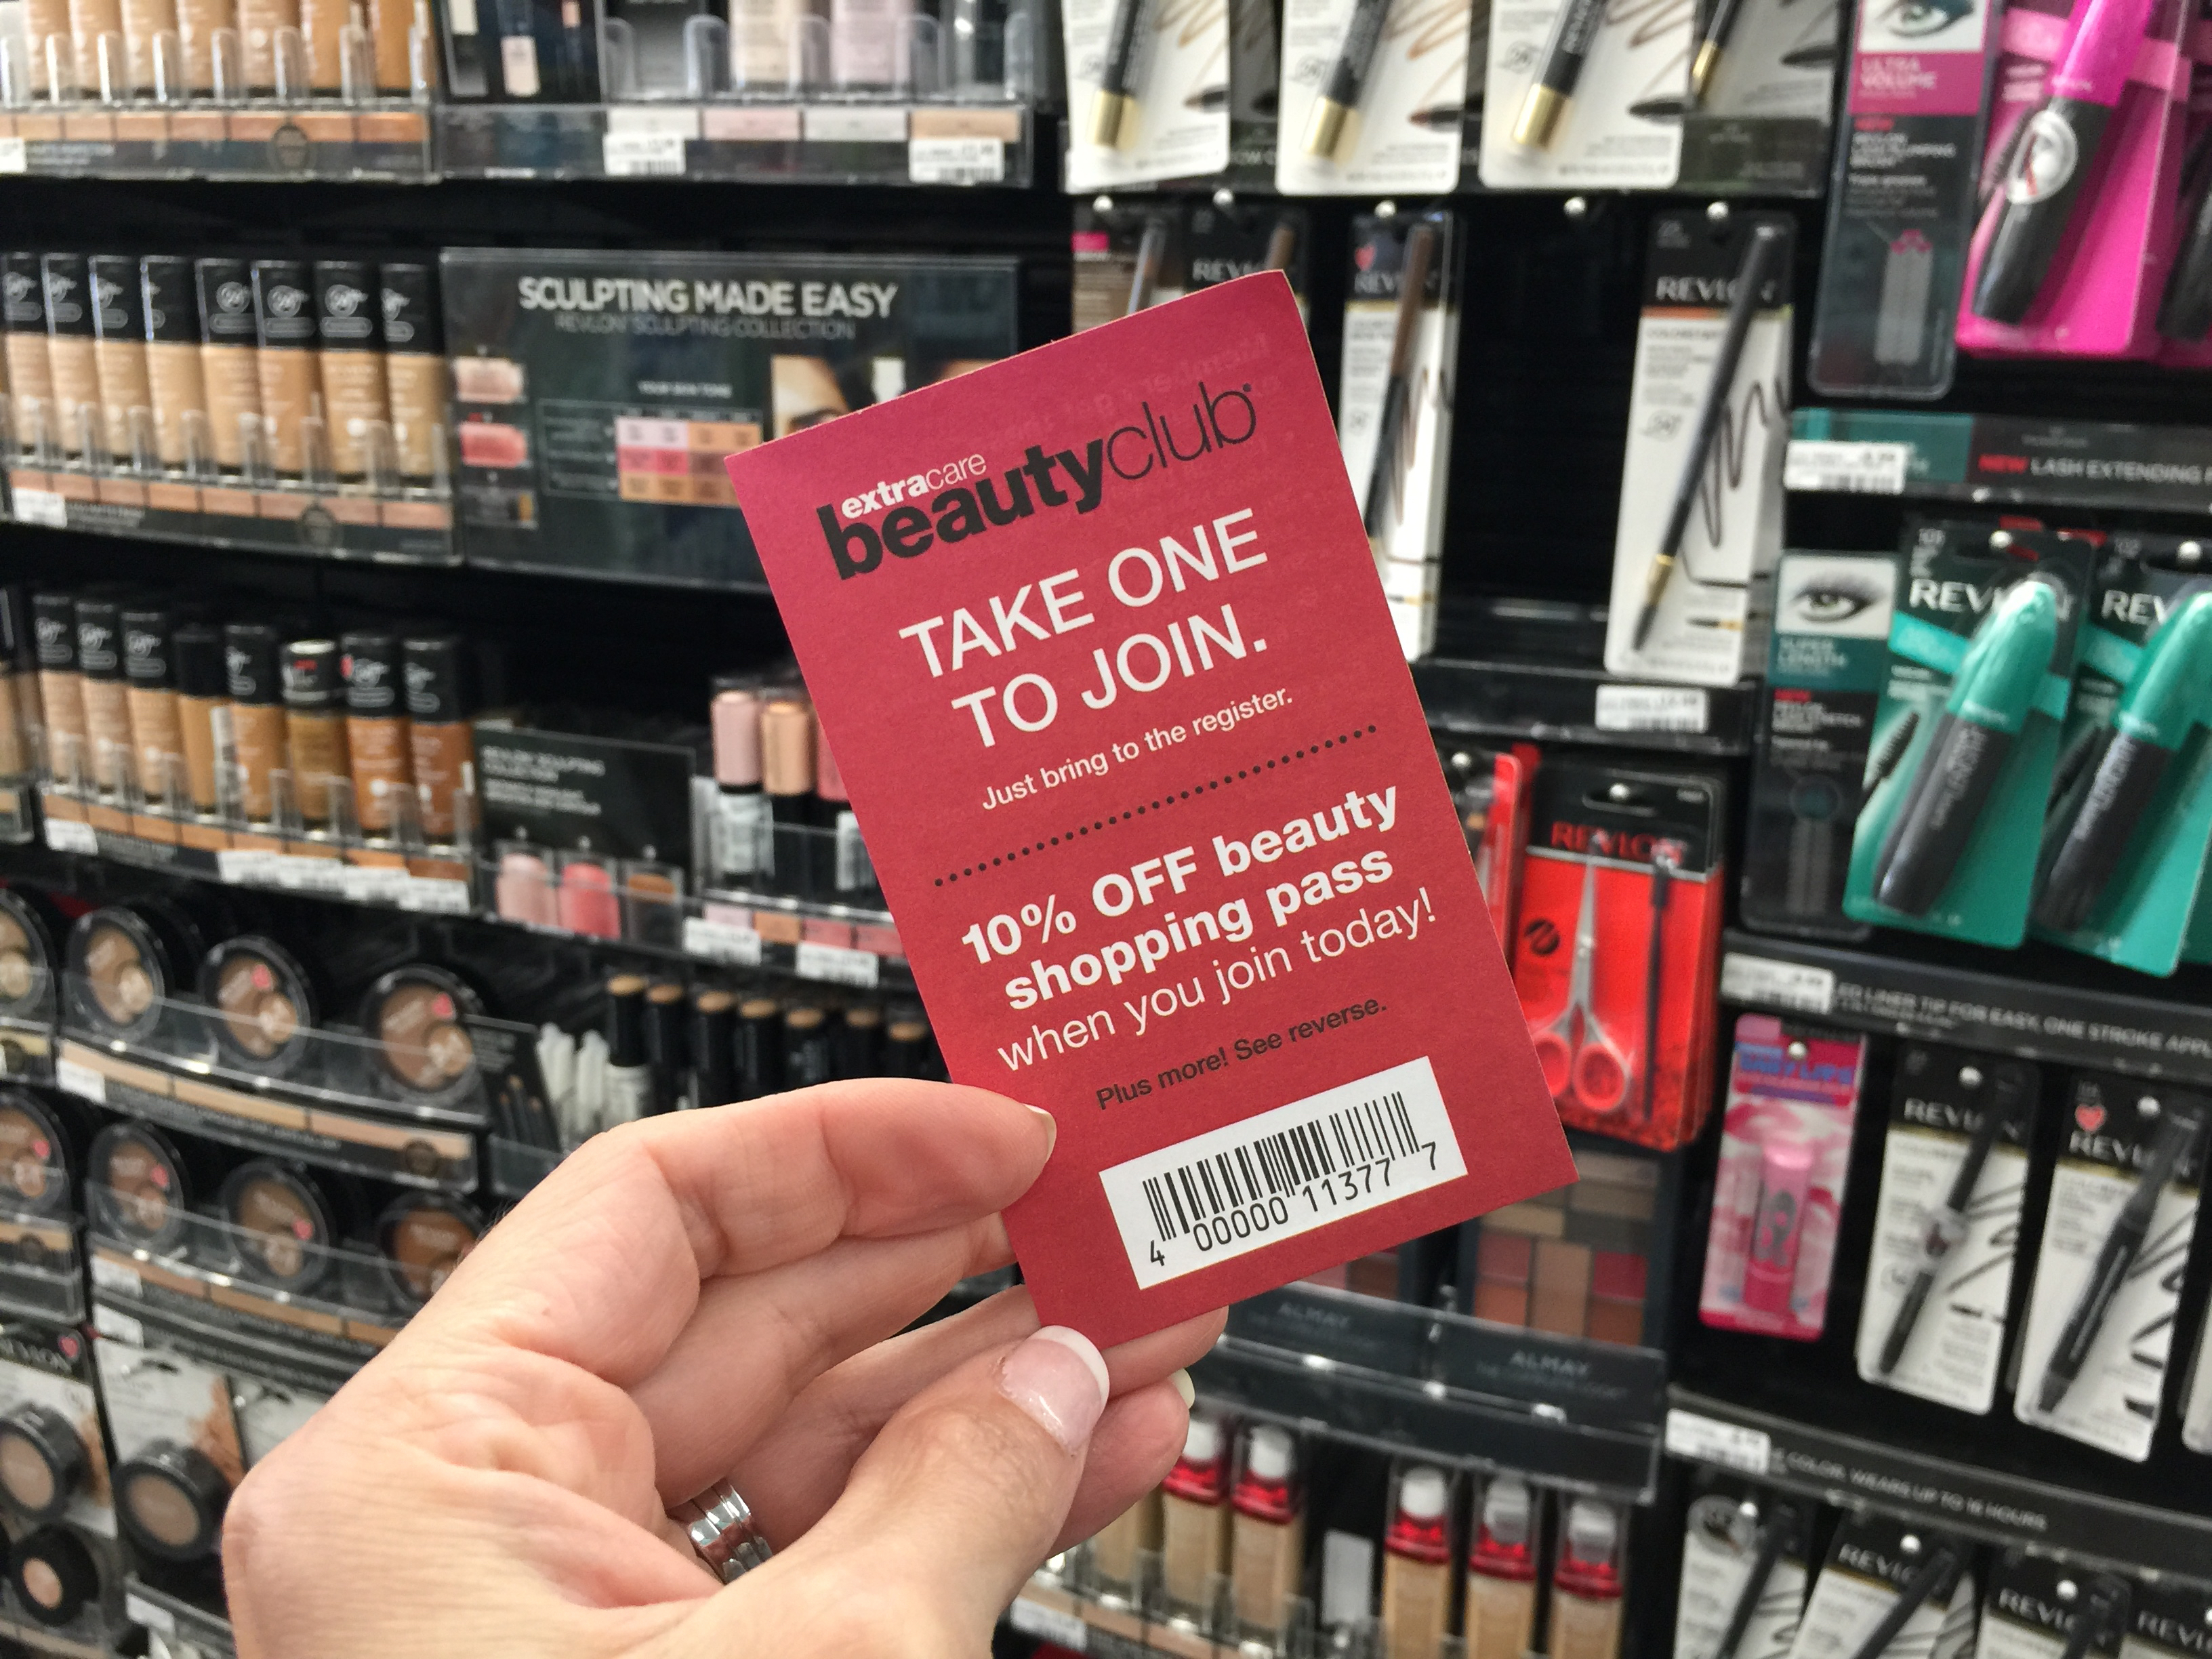 cvs store guide – Beauty club signup form